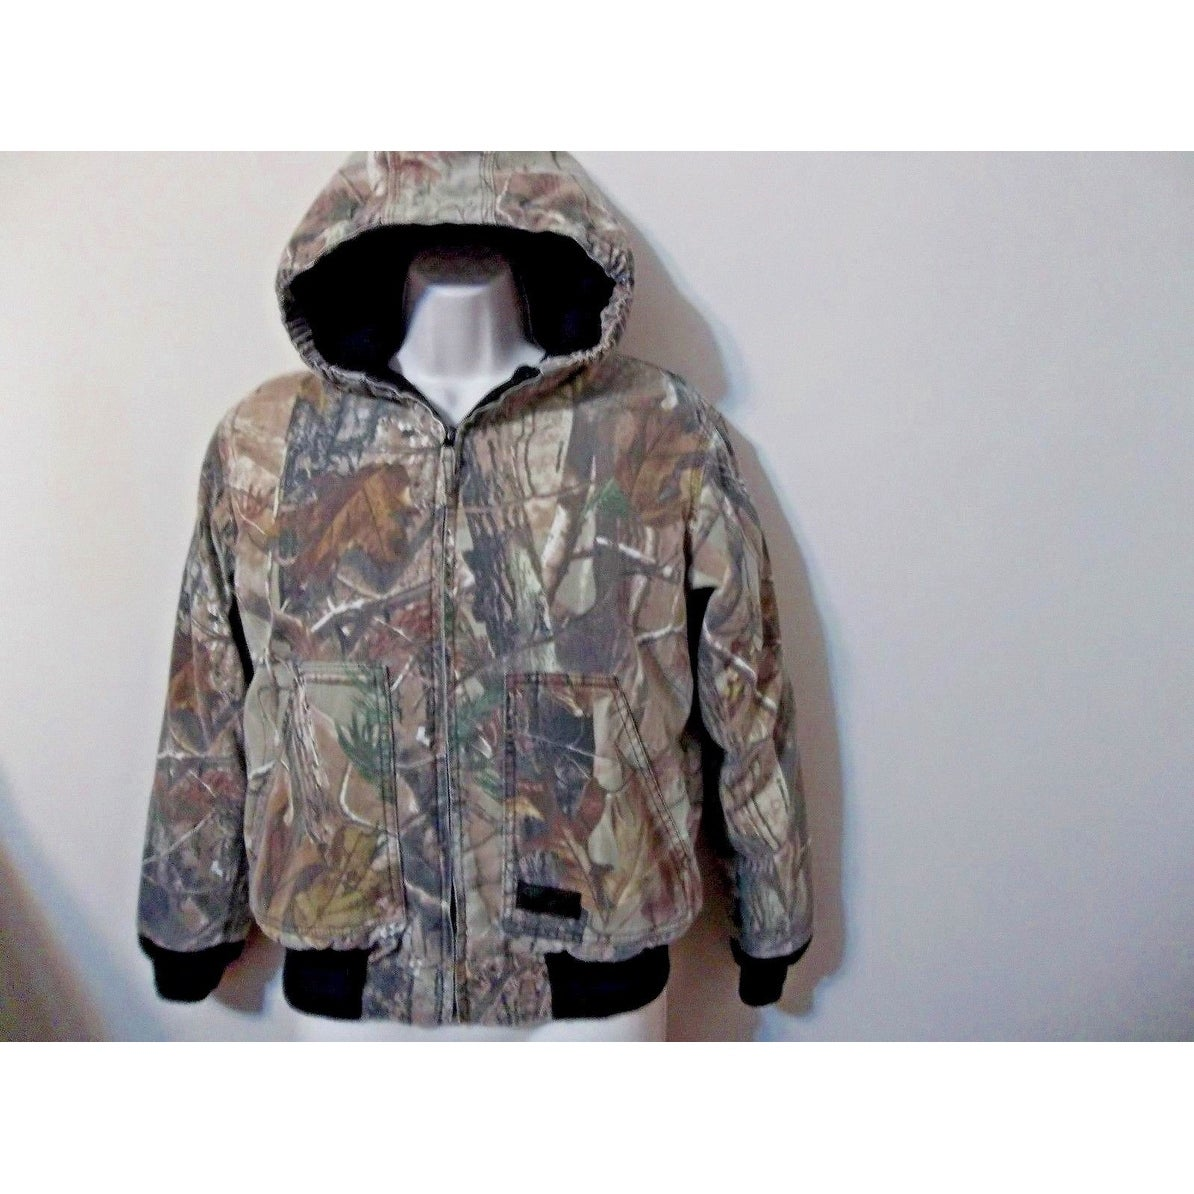 Shop Black Friday Deals On Liberty Rugged Outdoor Gear Realtree Camo Lined Hooded Hunting Jacket Xl Overstock 28337756